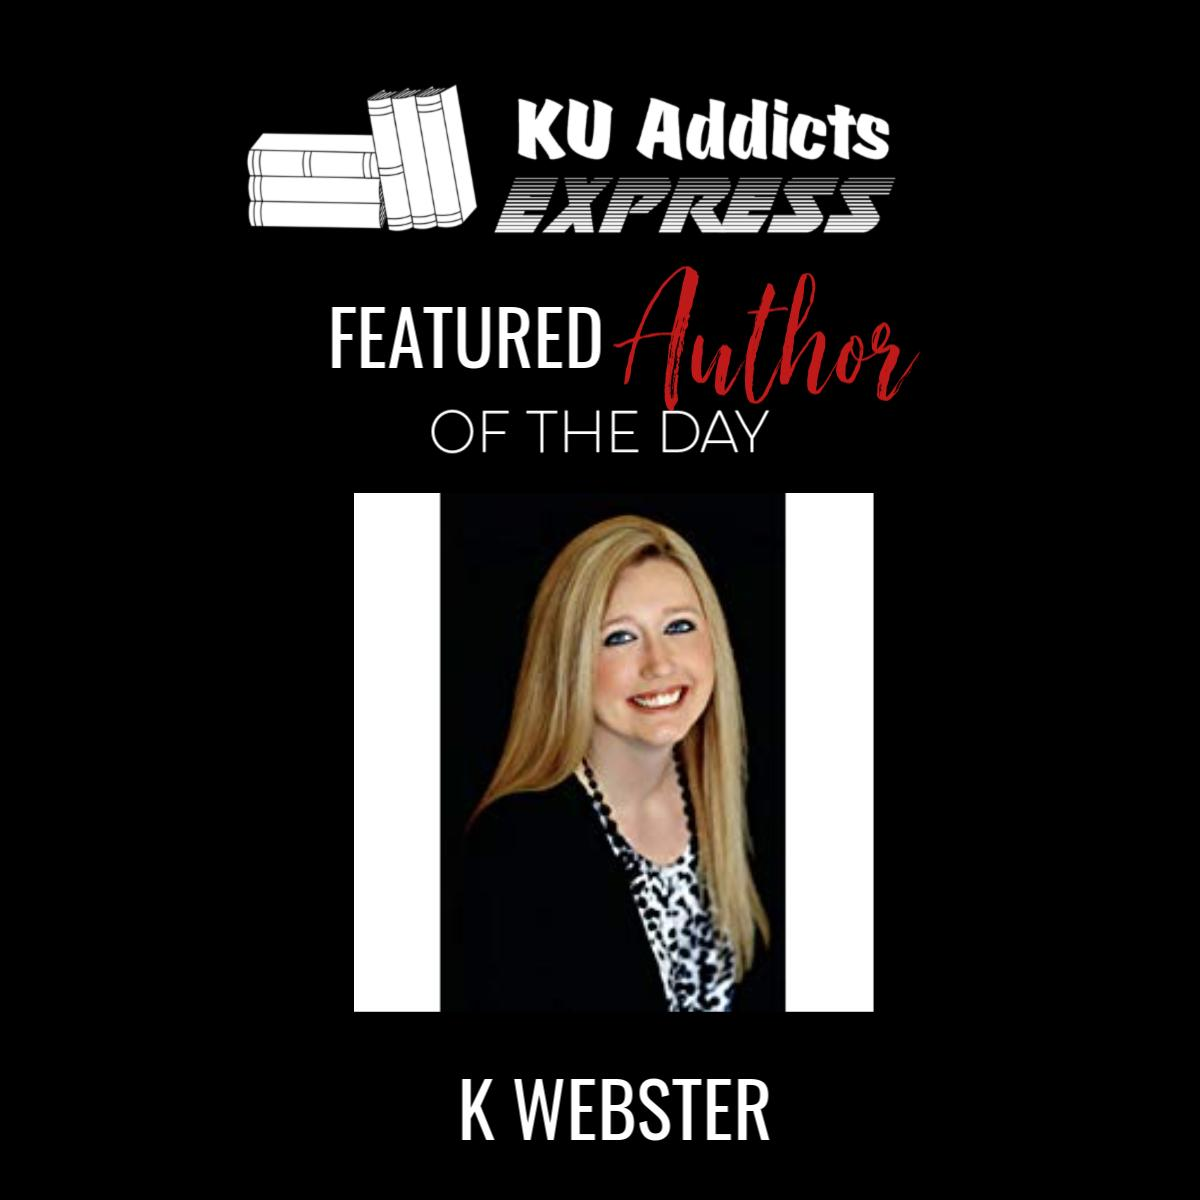 Featured Author of the Day  K Webster is a USA Today Bestselling author of many different genres including dark romance, taboo romance, contemporary romance, historical romance, paranormal romance & erotic romance.  Find her on #KindleUnlimited - https://geni.us/nEB8  #author